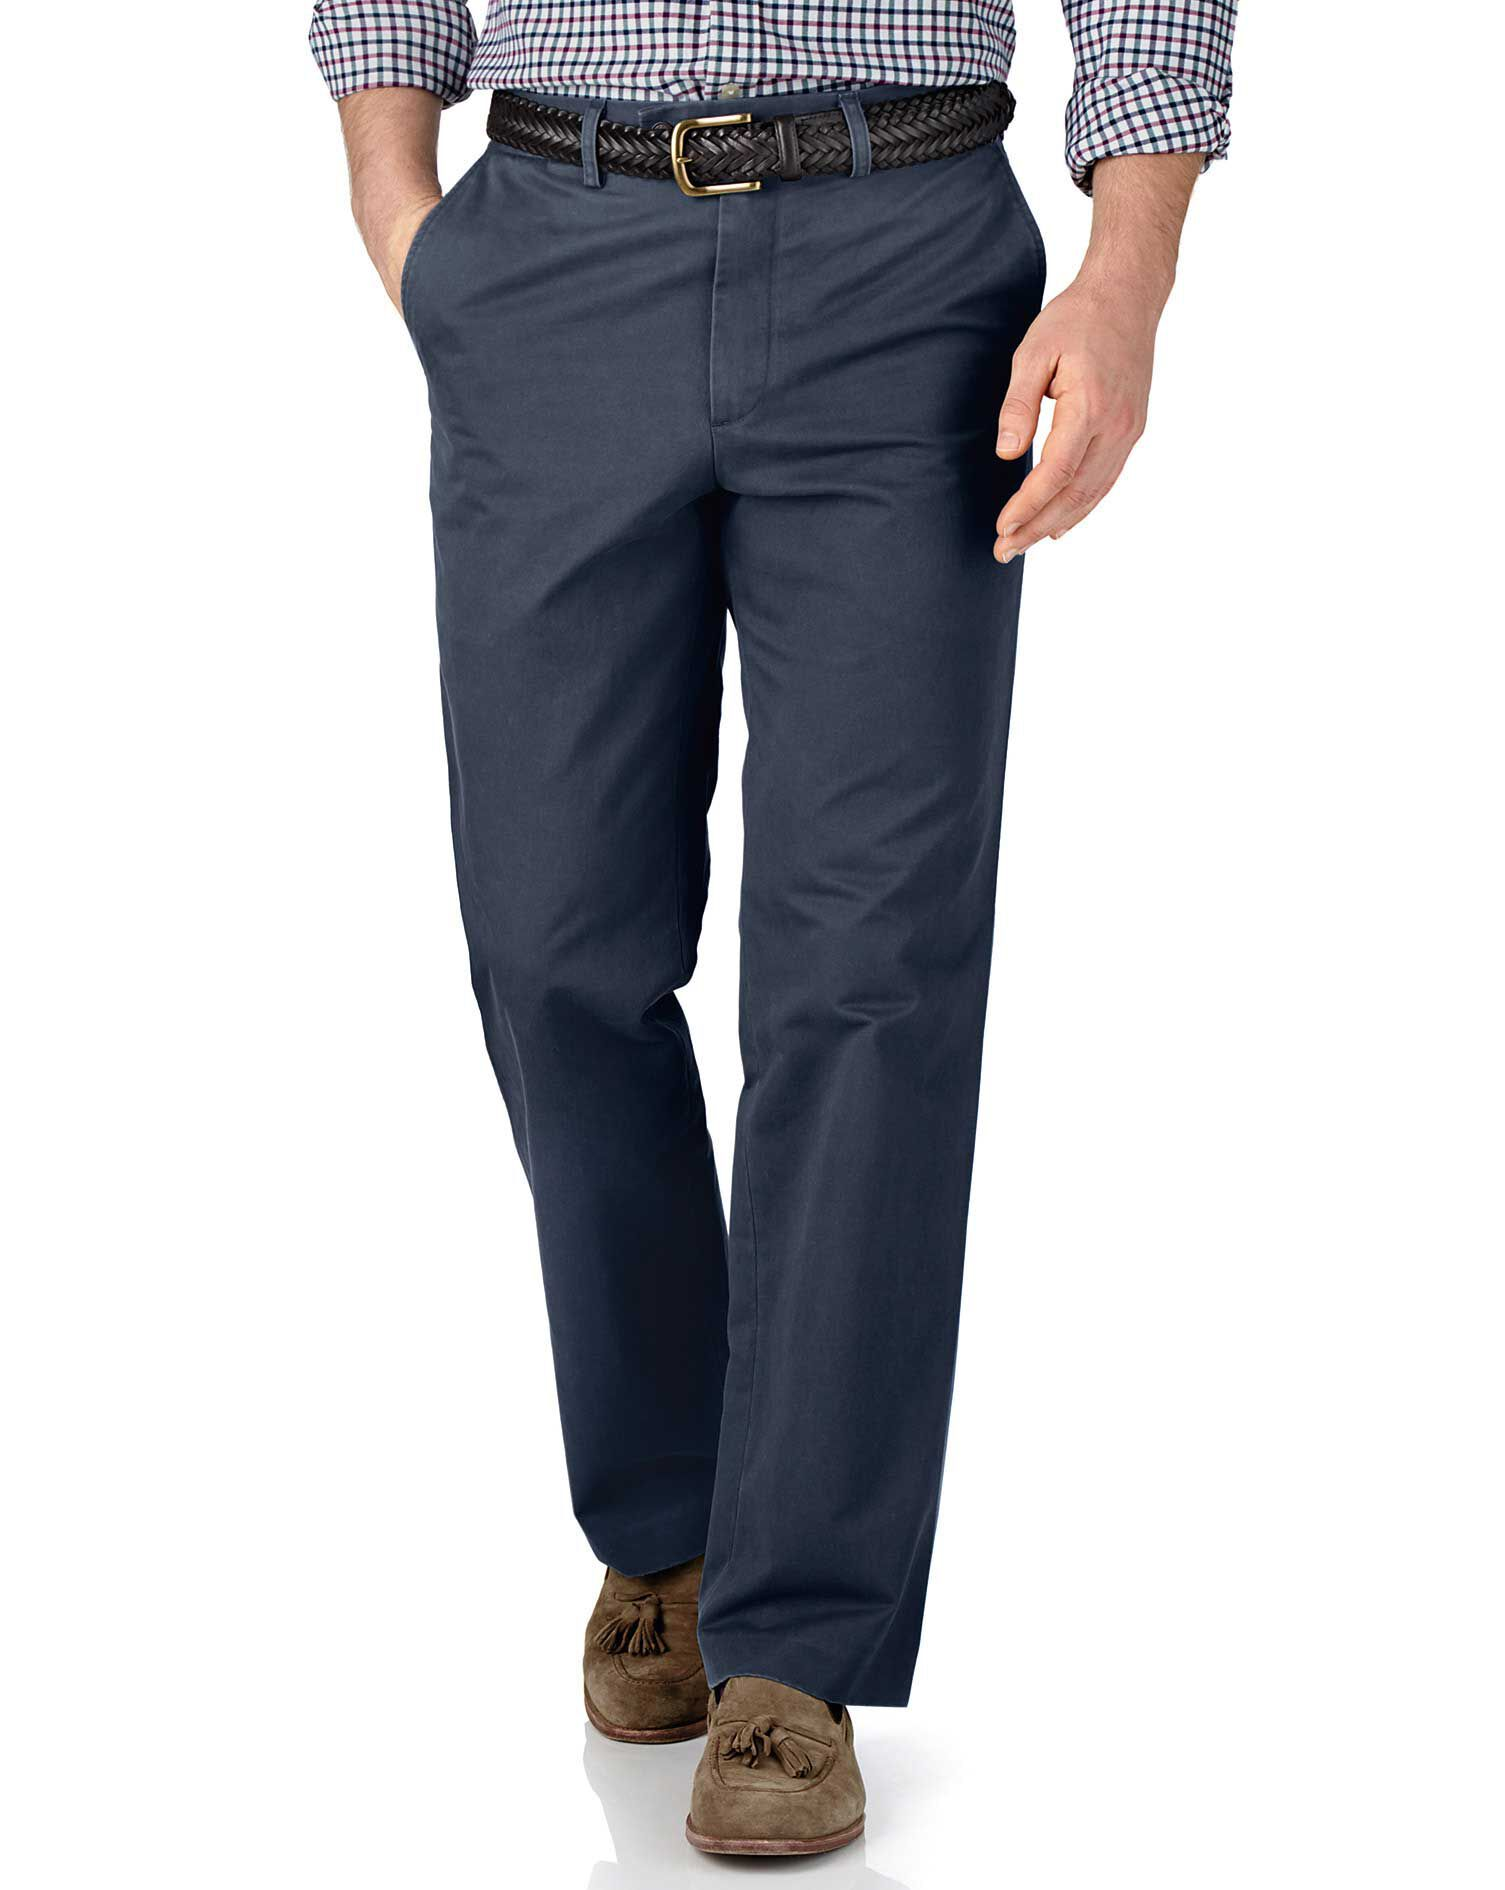 Airforce Blue Classic Fit Flat Front Cotton Chino Trousers Size W40 L38 by Charles Tyrwhitt